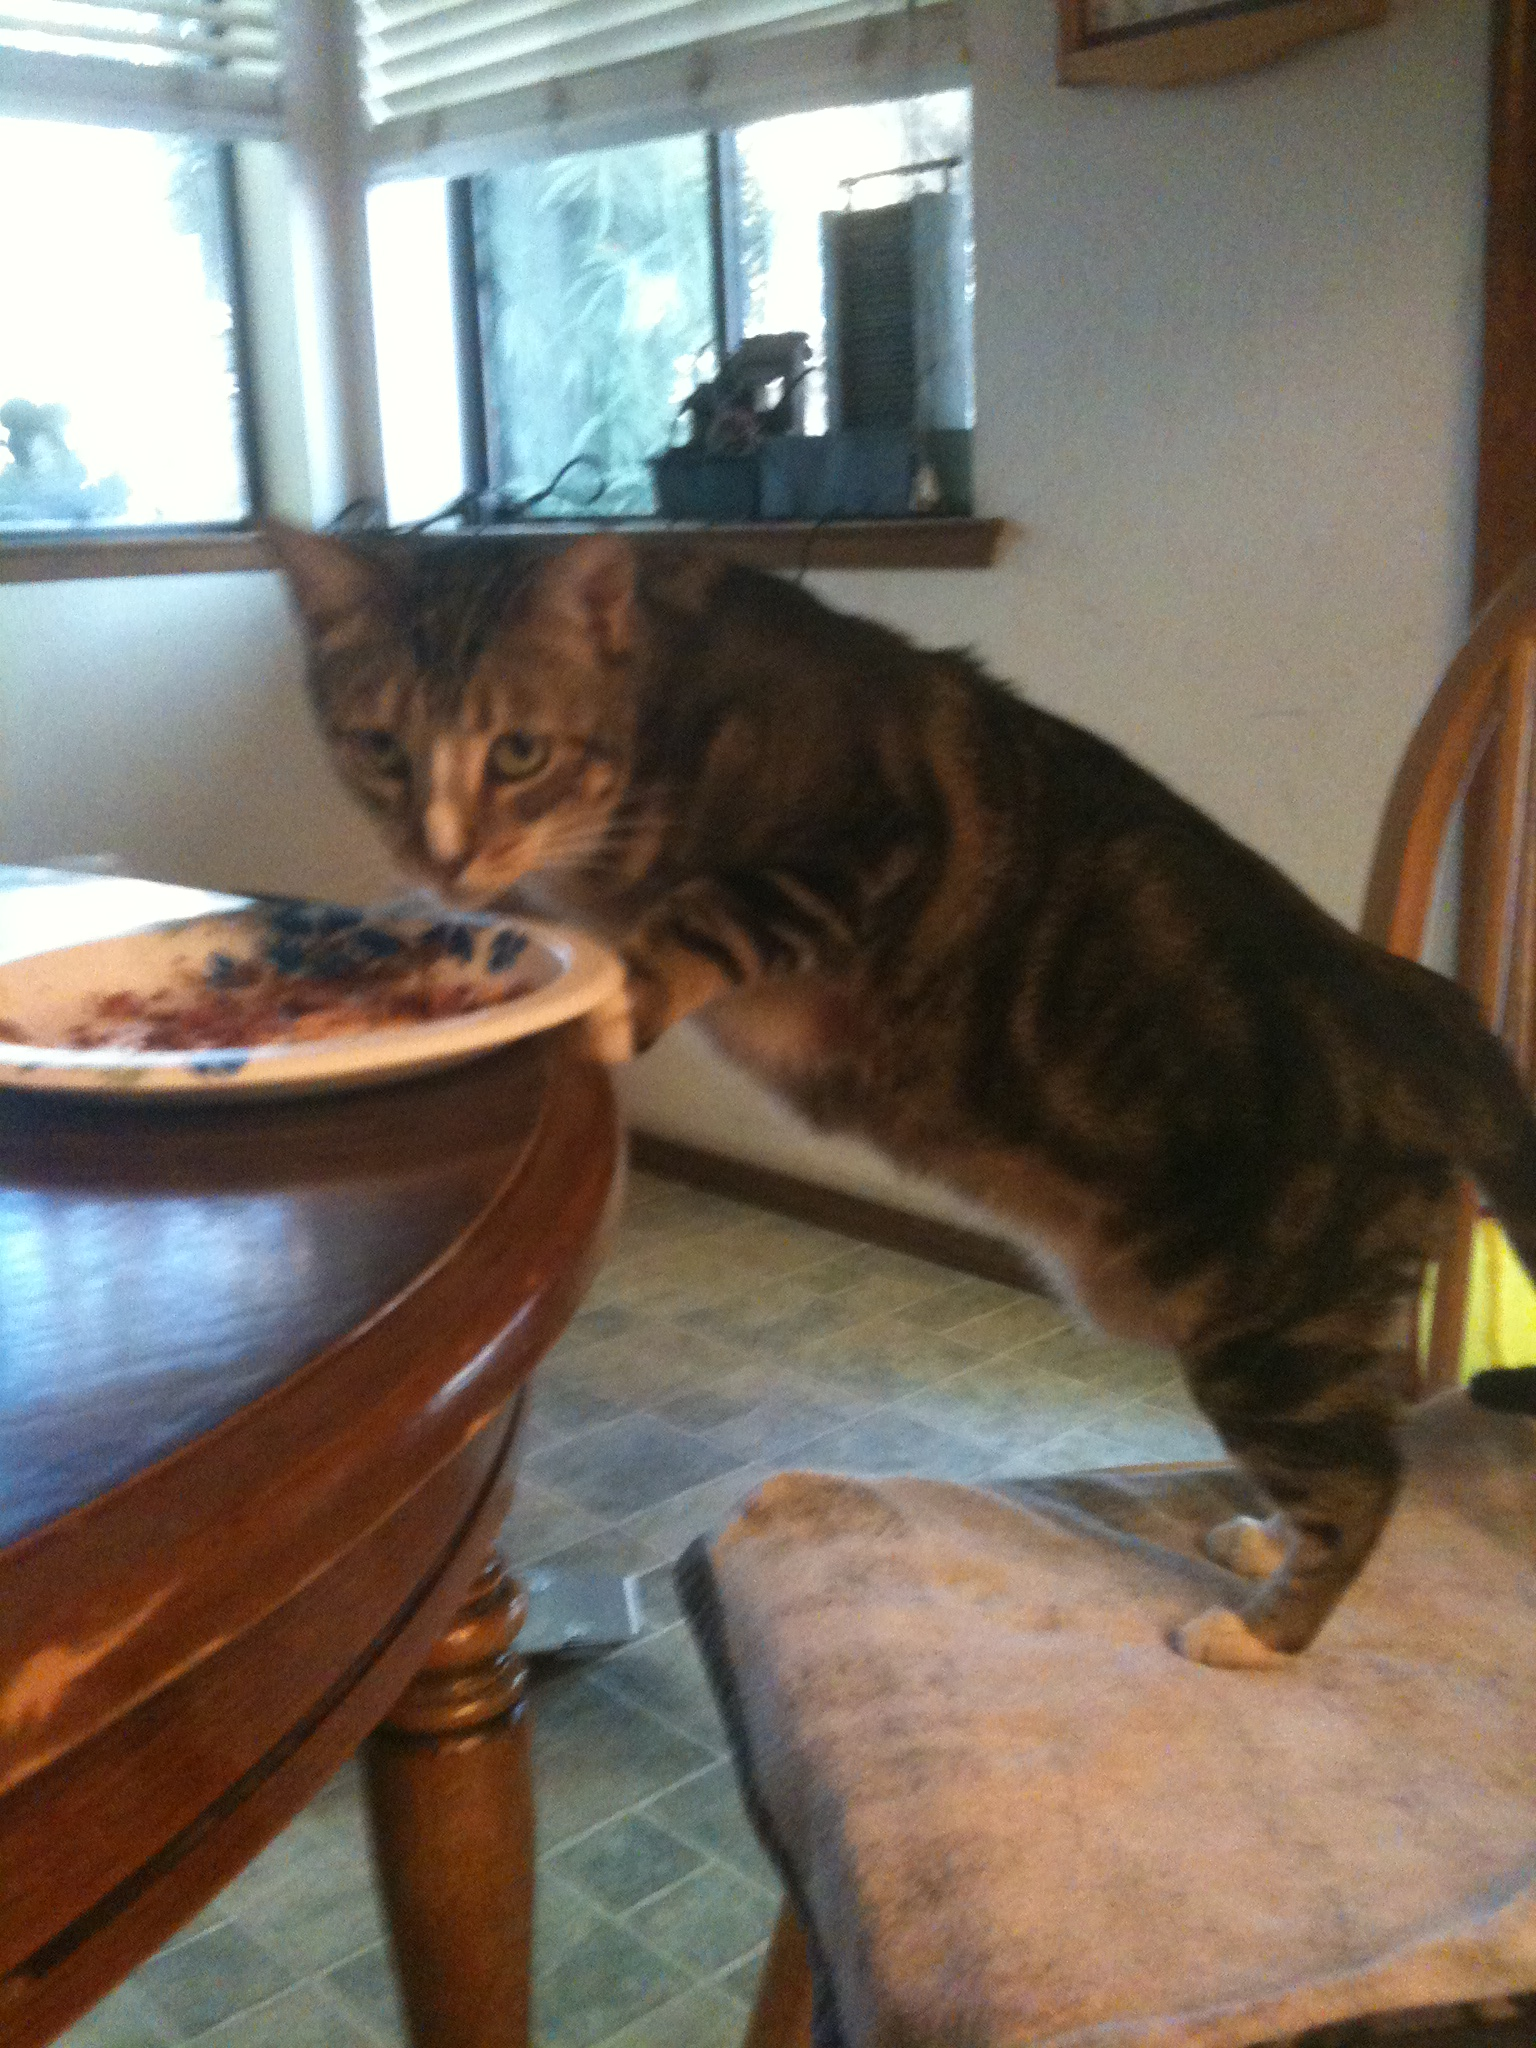 Strange Caught Eating Off The Table Cats Photo 25197624 Fanpop Interior Design Ideas Gentotthenellocom